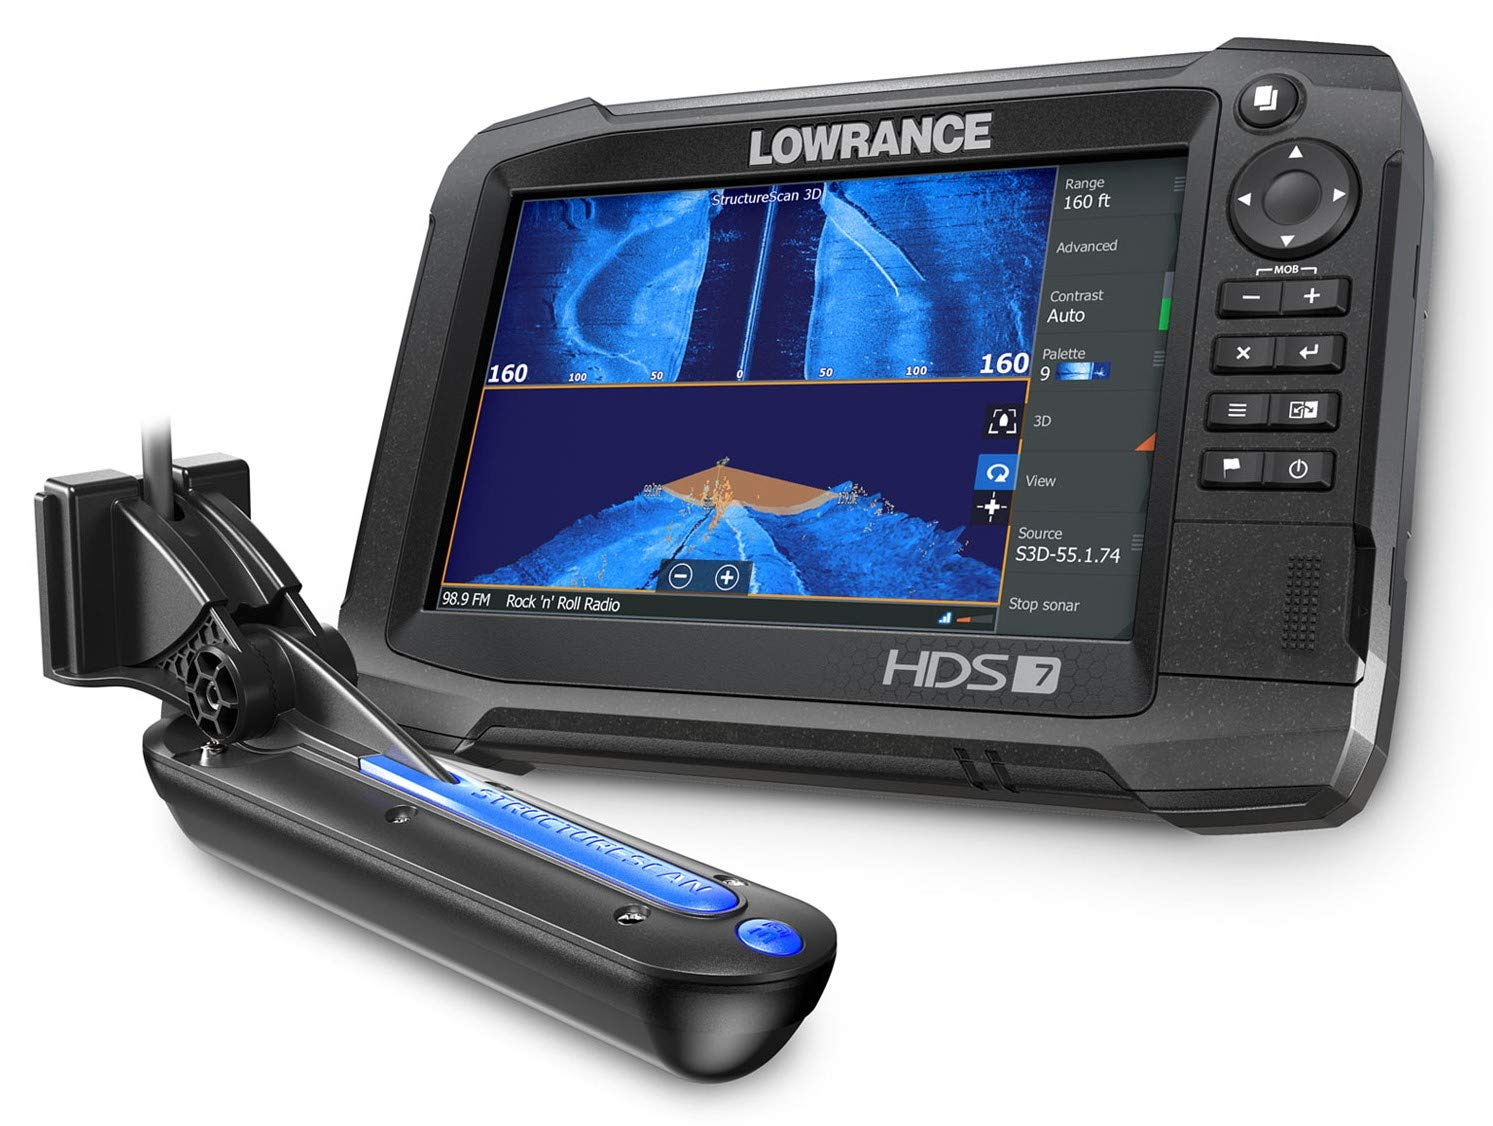 HDS-7 Carbon - 7-inch Fish Finder with TotalScan Transducer and C-MAP US  Enhanced Basemap Installed